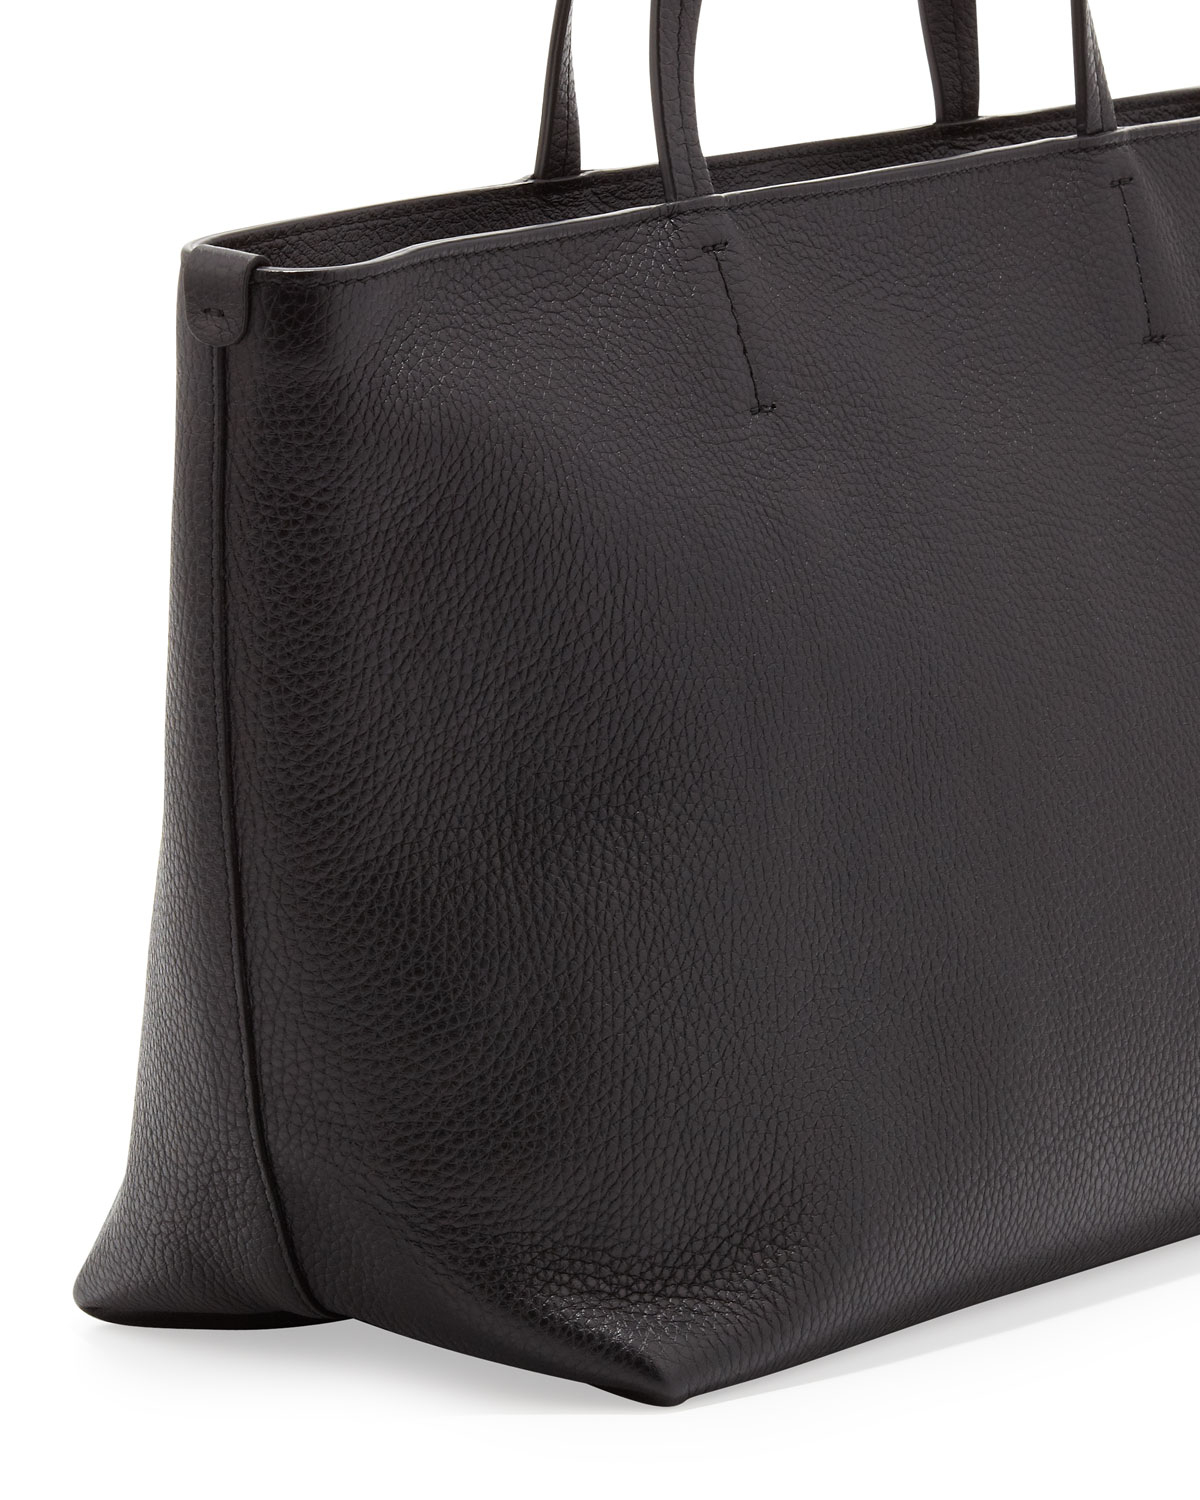 Ferragamo Bice Pebbled Leather Tote Bag in Black | Lyst